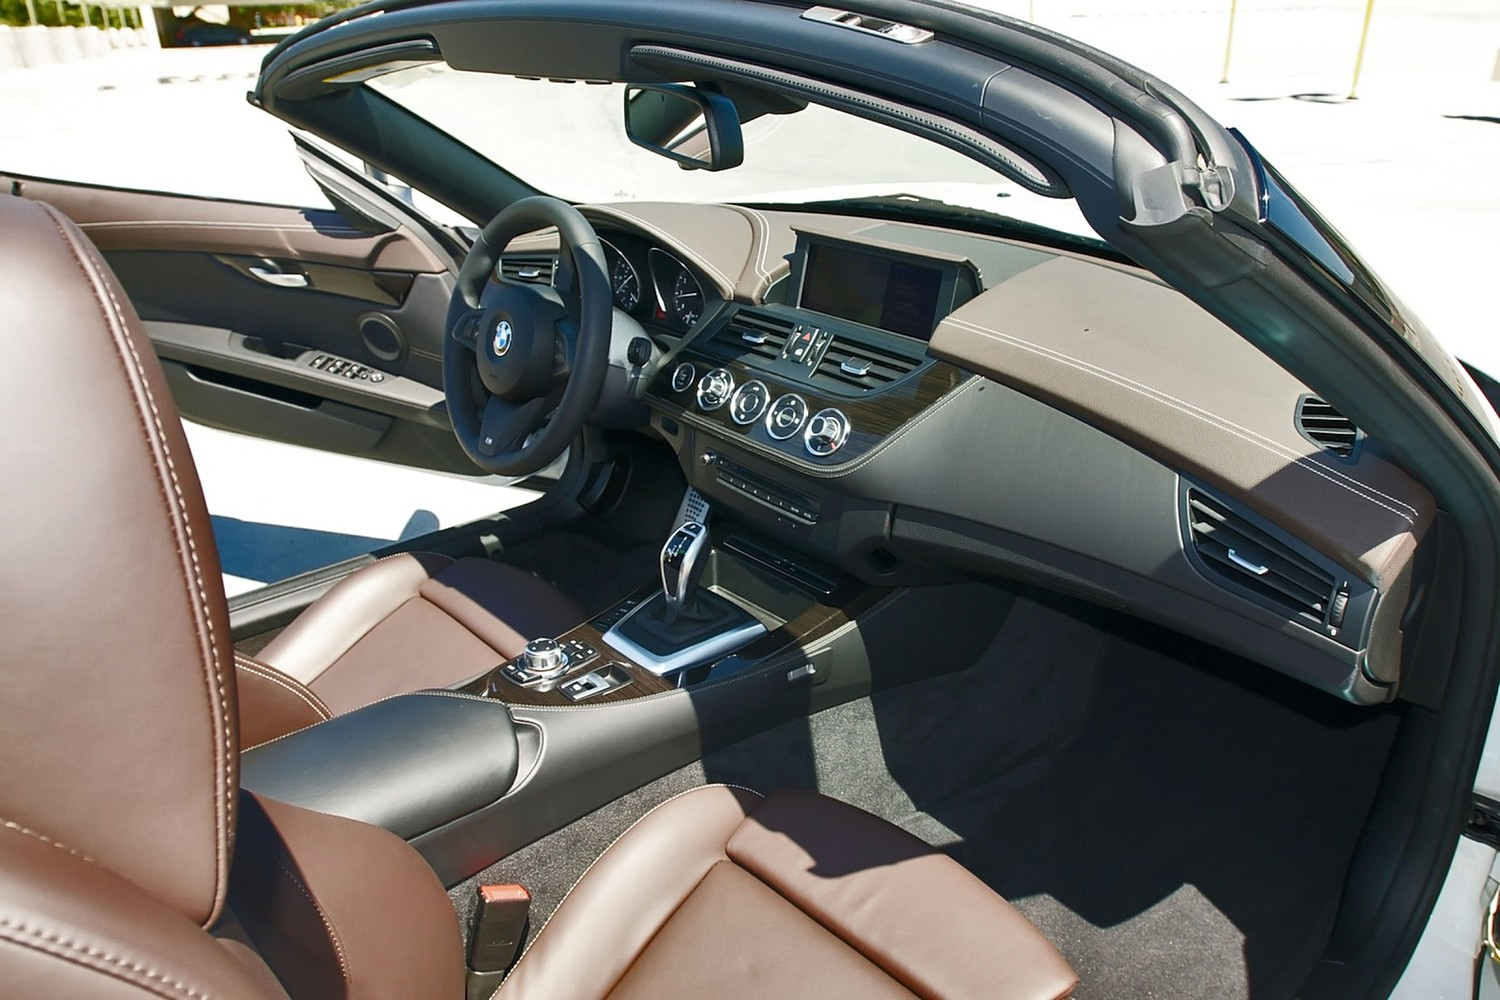 BMW Z4 sDrive28i Convertible Interior (2012 model year shown)